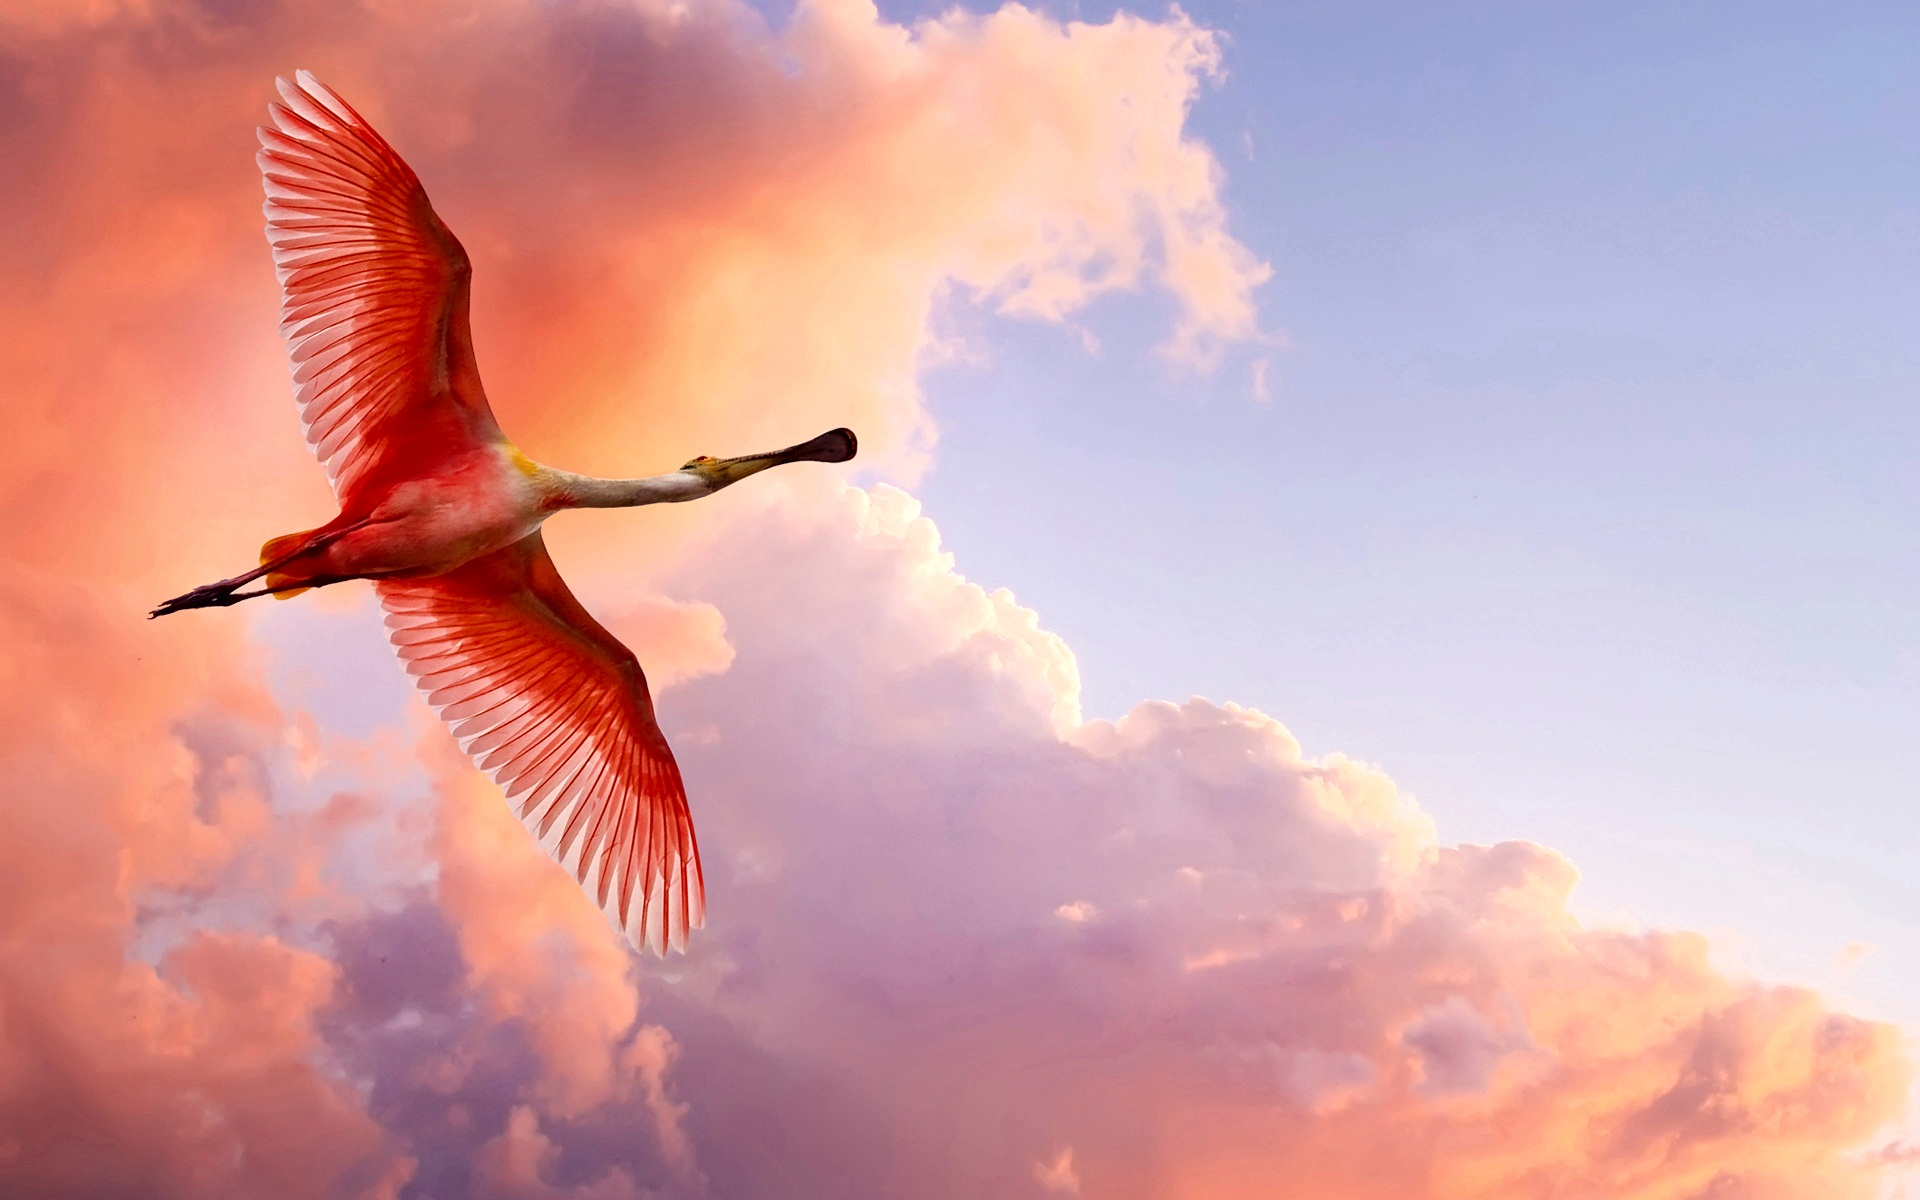 Amazing Roseate Spoonbill Wallpaper